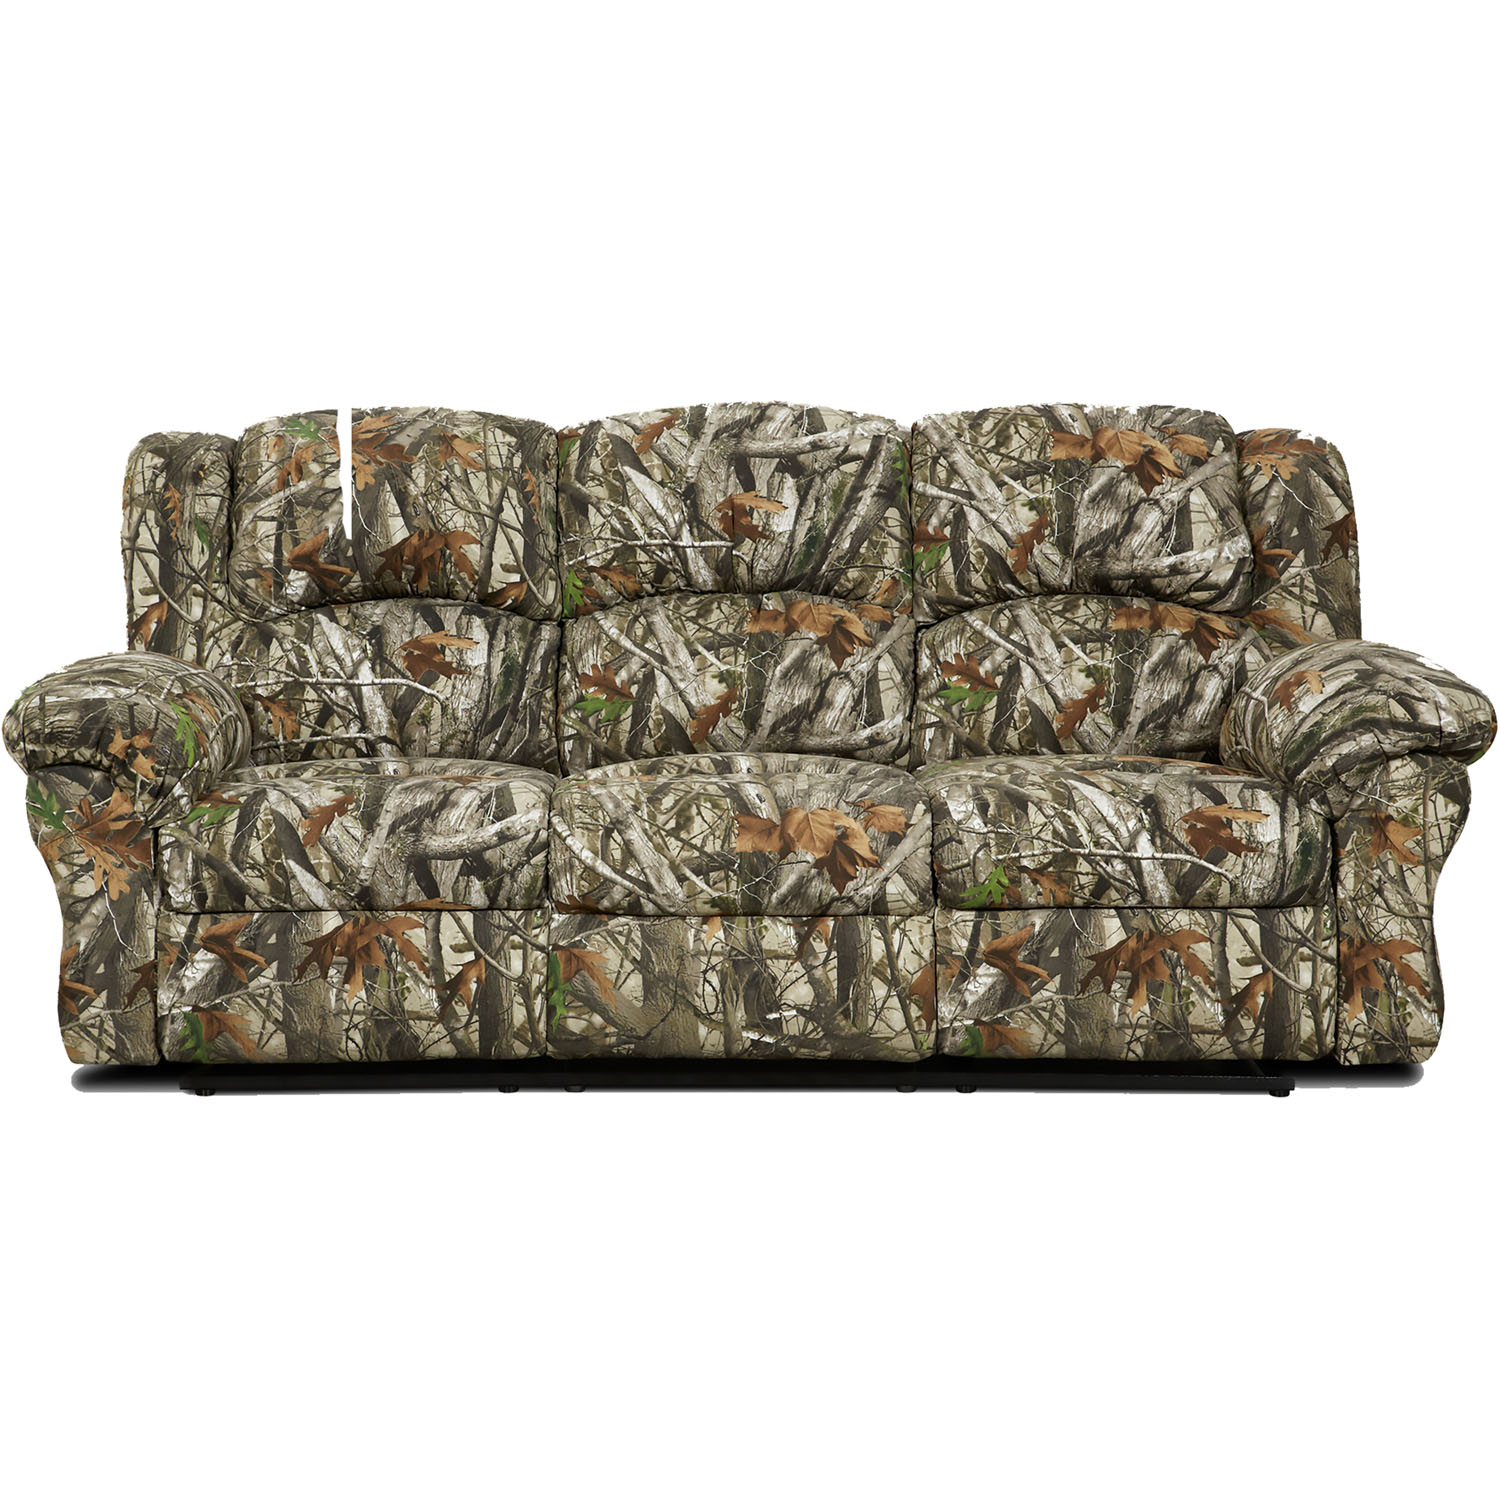 Peachy Cambridge Camo Double Reclining Sofa Walmart Com Onthecornerstone Fun Painted Chair Ideas Images Onthecornerstoneorg